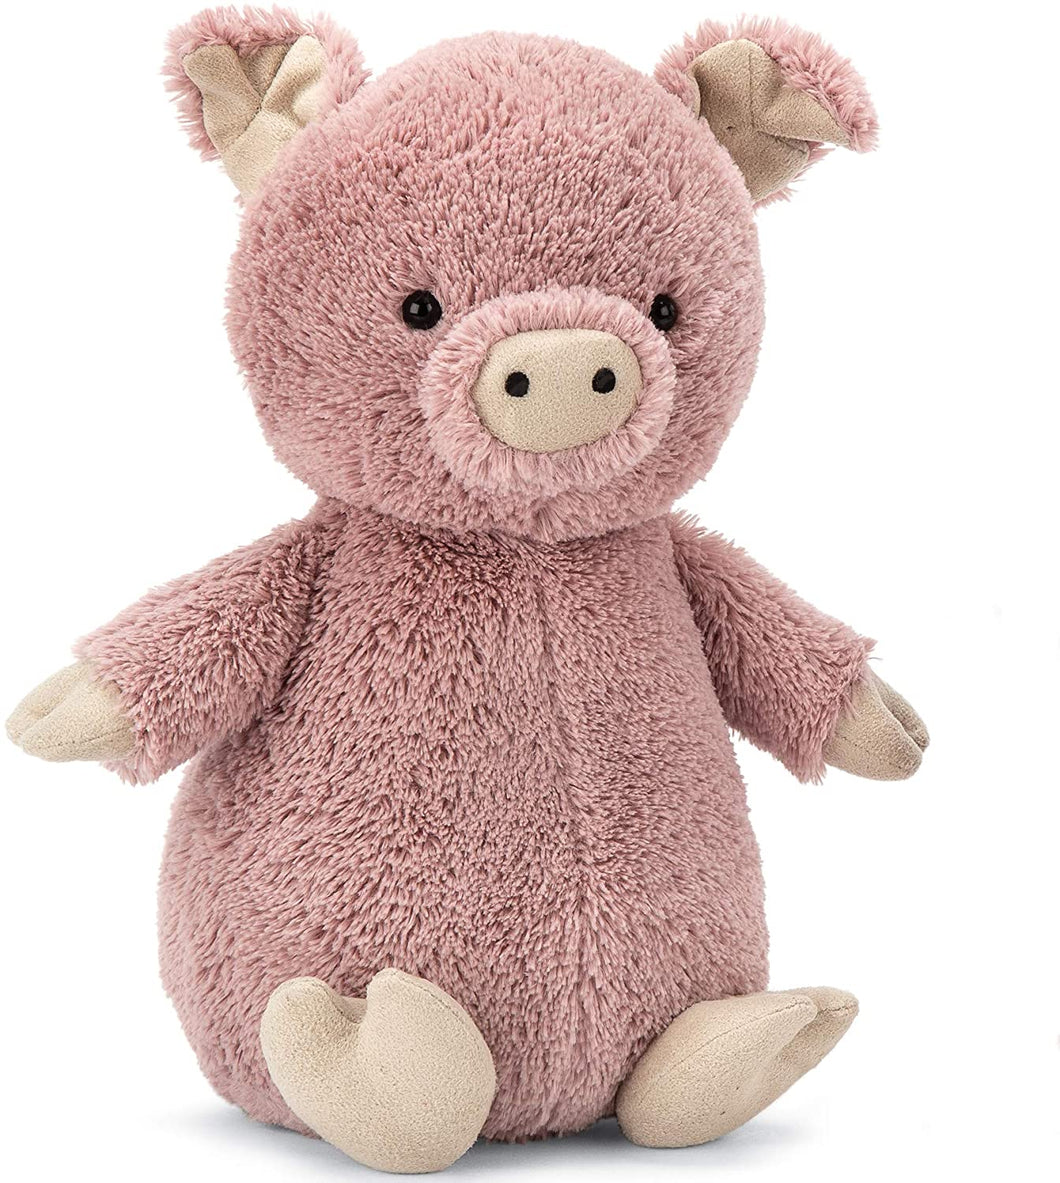 Jellycat Peanut Pig Stuffed Animal, Medium, 9 inches